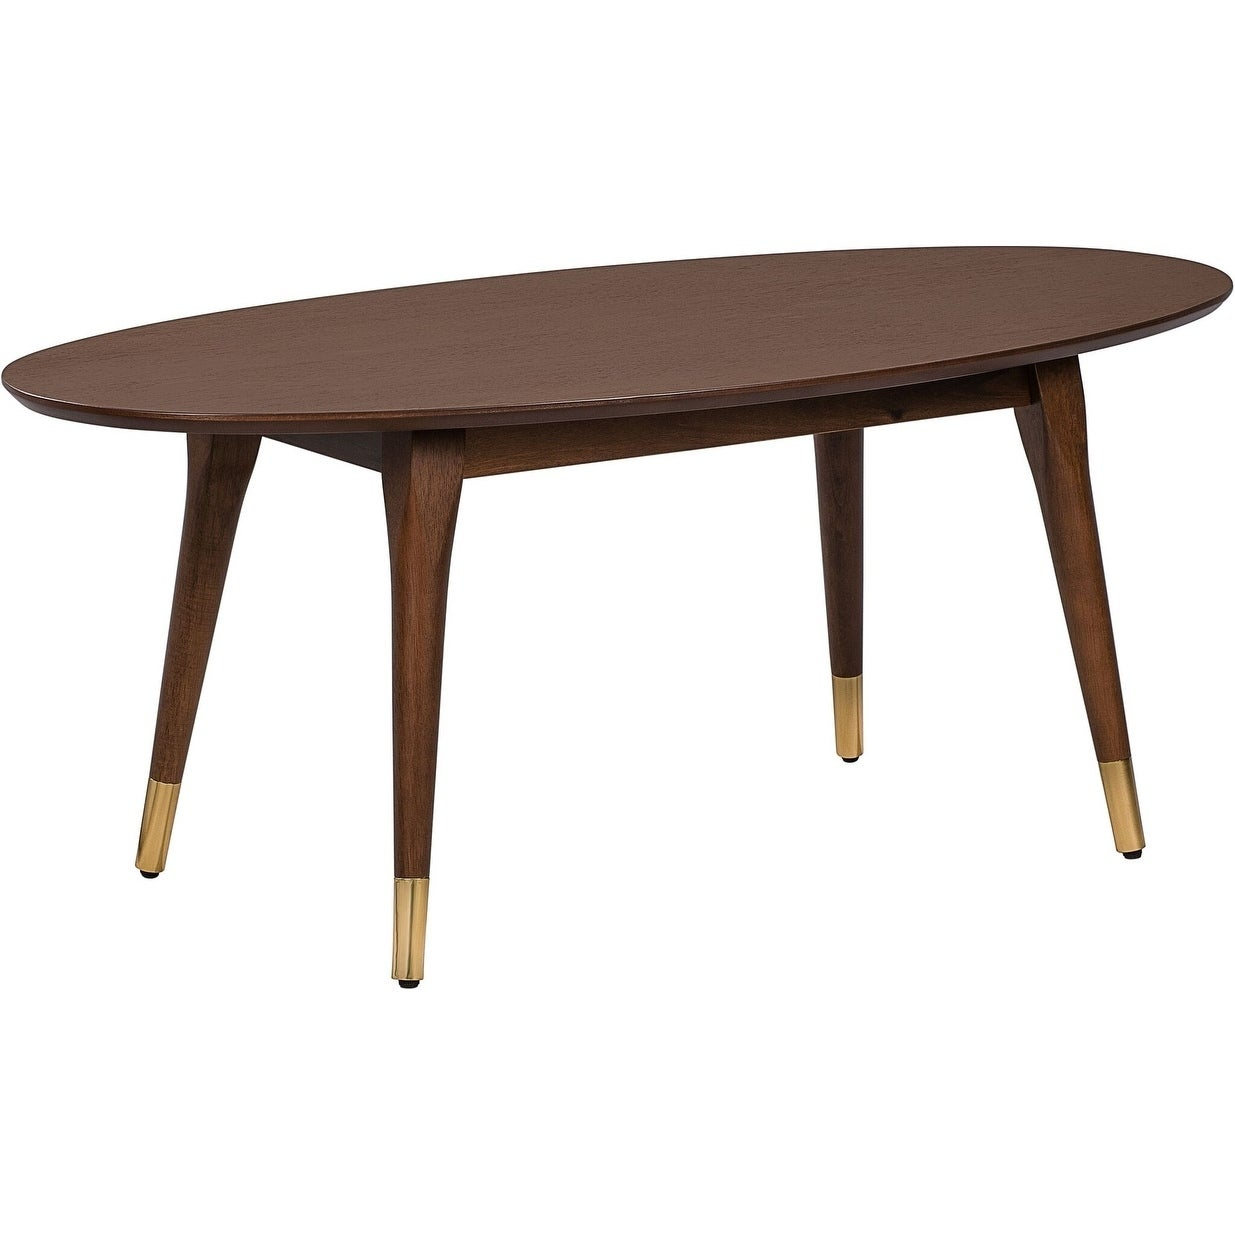 Phenomenal Elle Decor Clemintine Mid Century Oval Table Home Interior And Landscaping Ologienasavecom